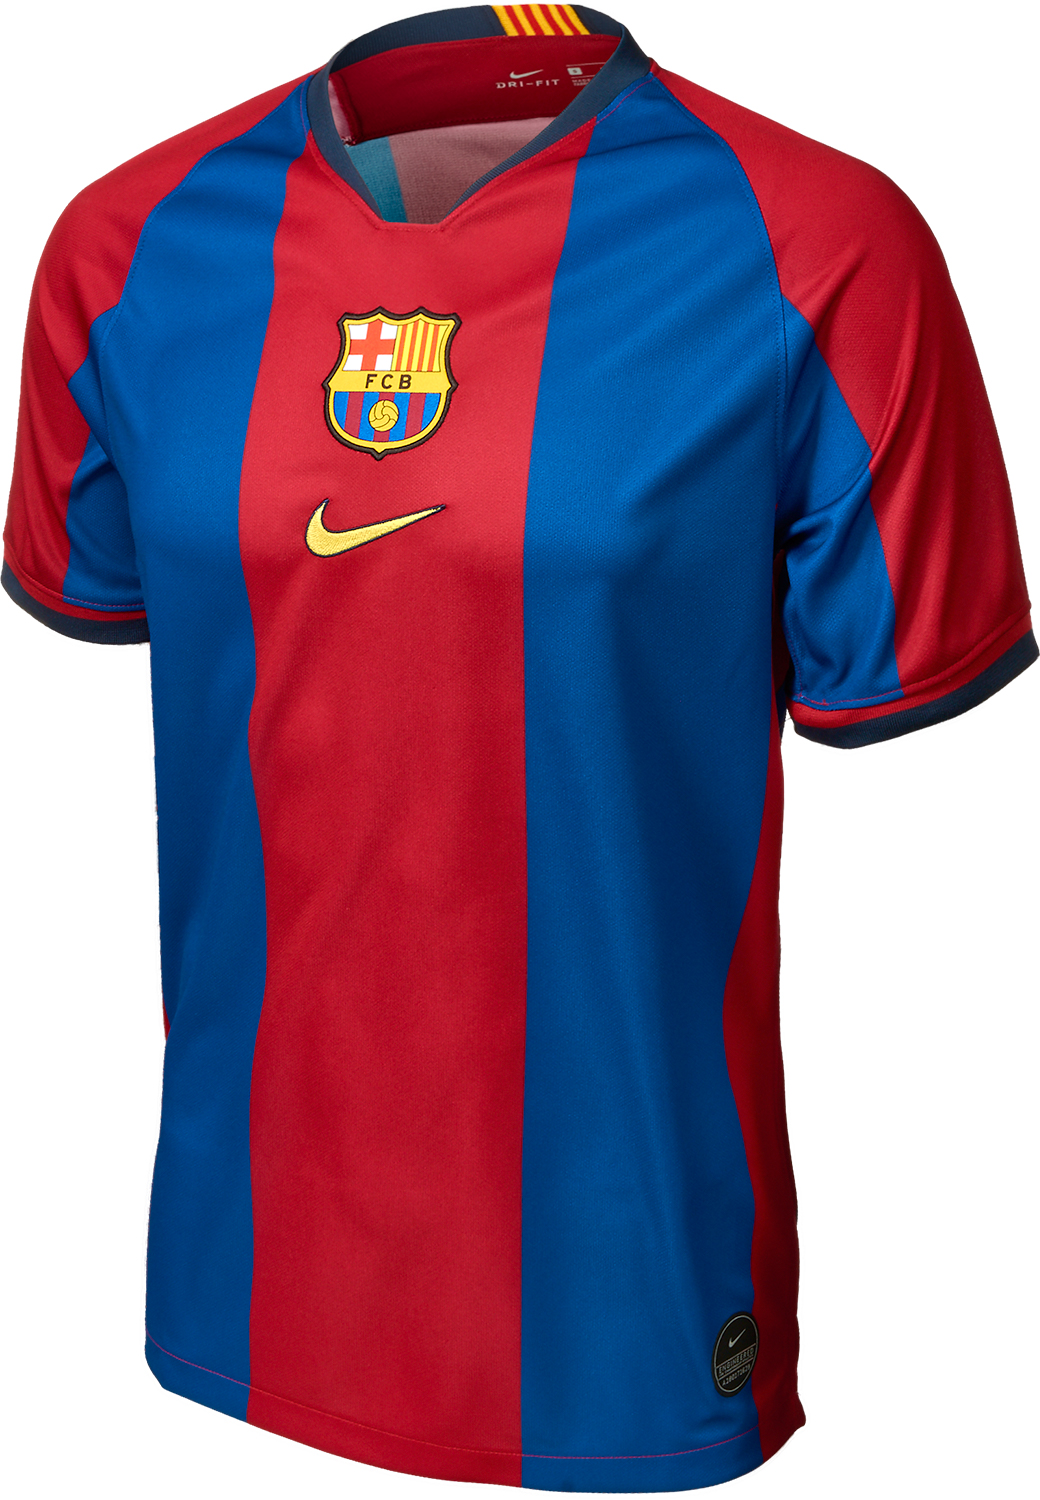 wholesale dealer 006fb c553a Nike Lionel Messi 98/99 Barcelona Home Jersey - SoccerPro